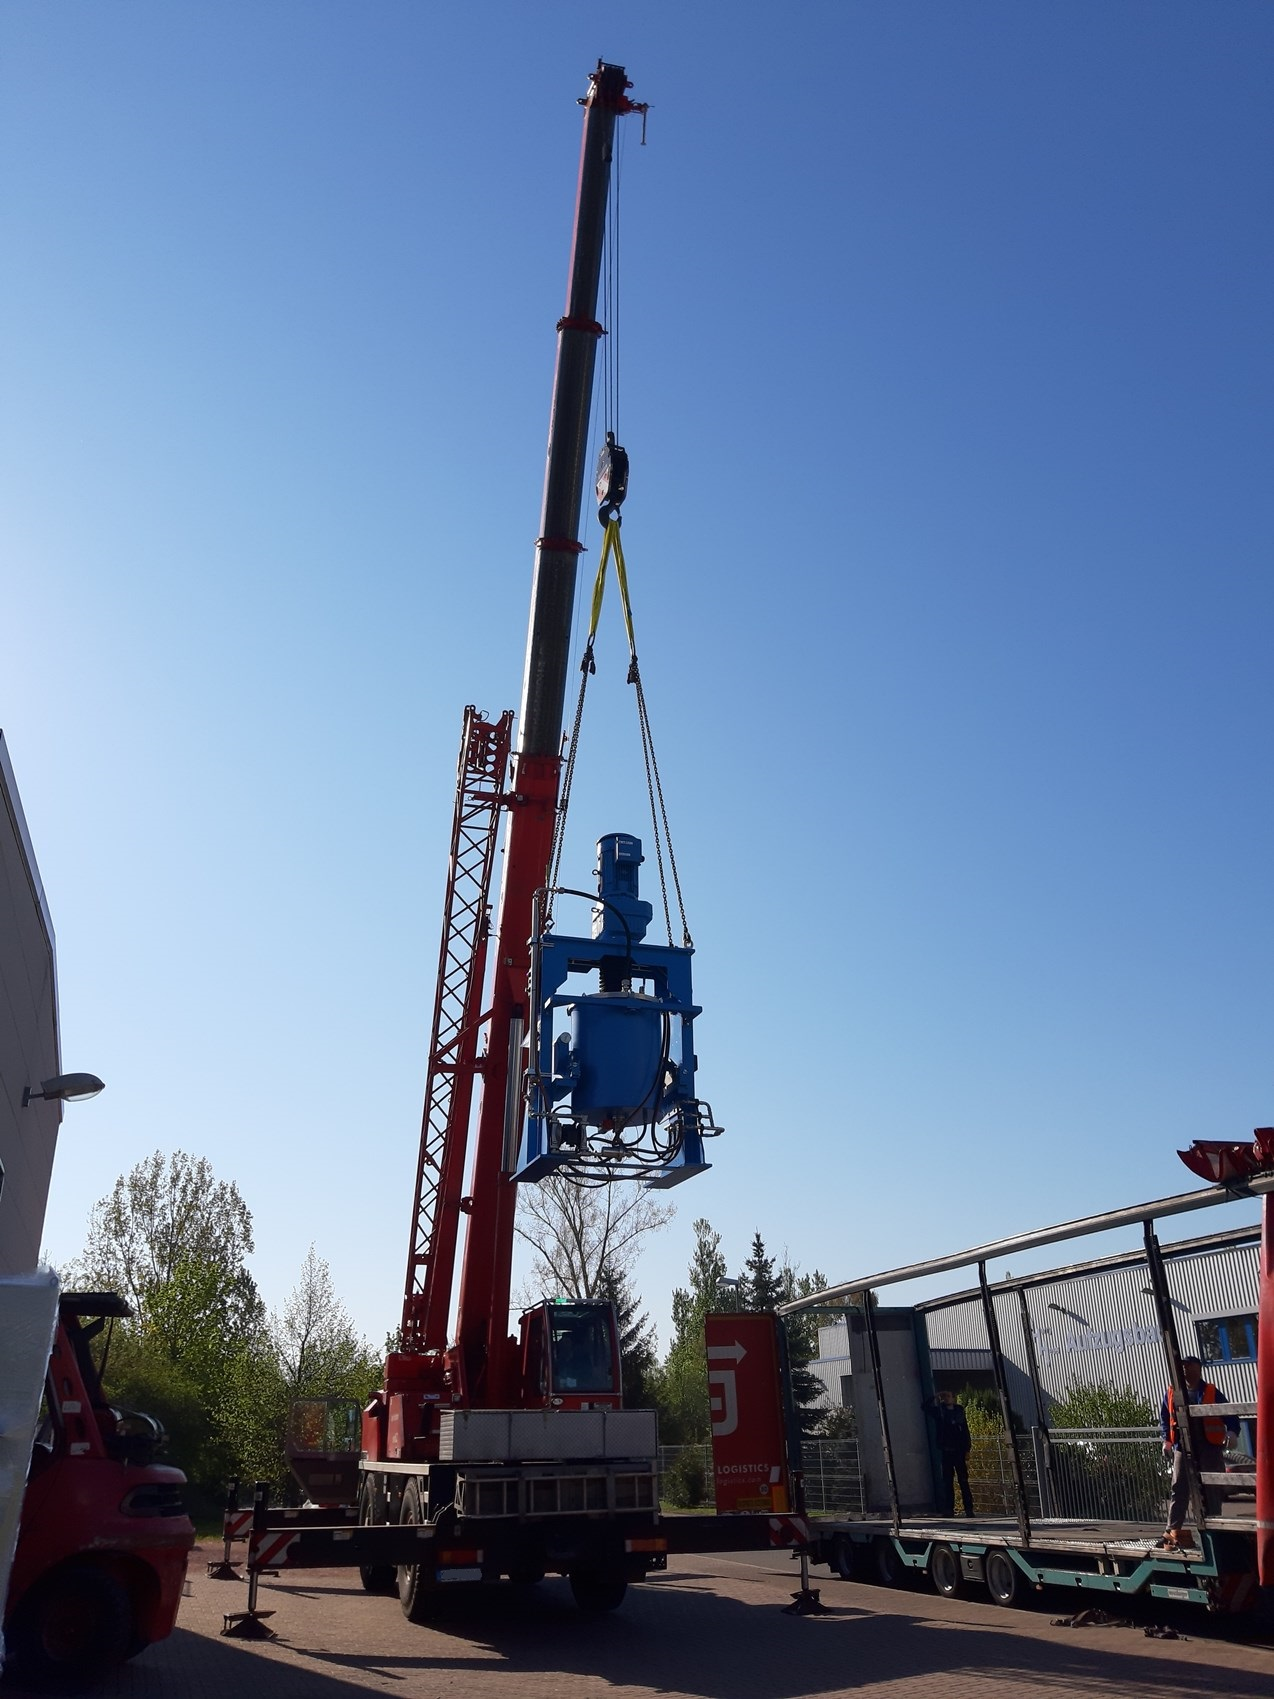 Attritor RMK 350 on crane in the air